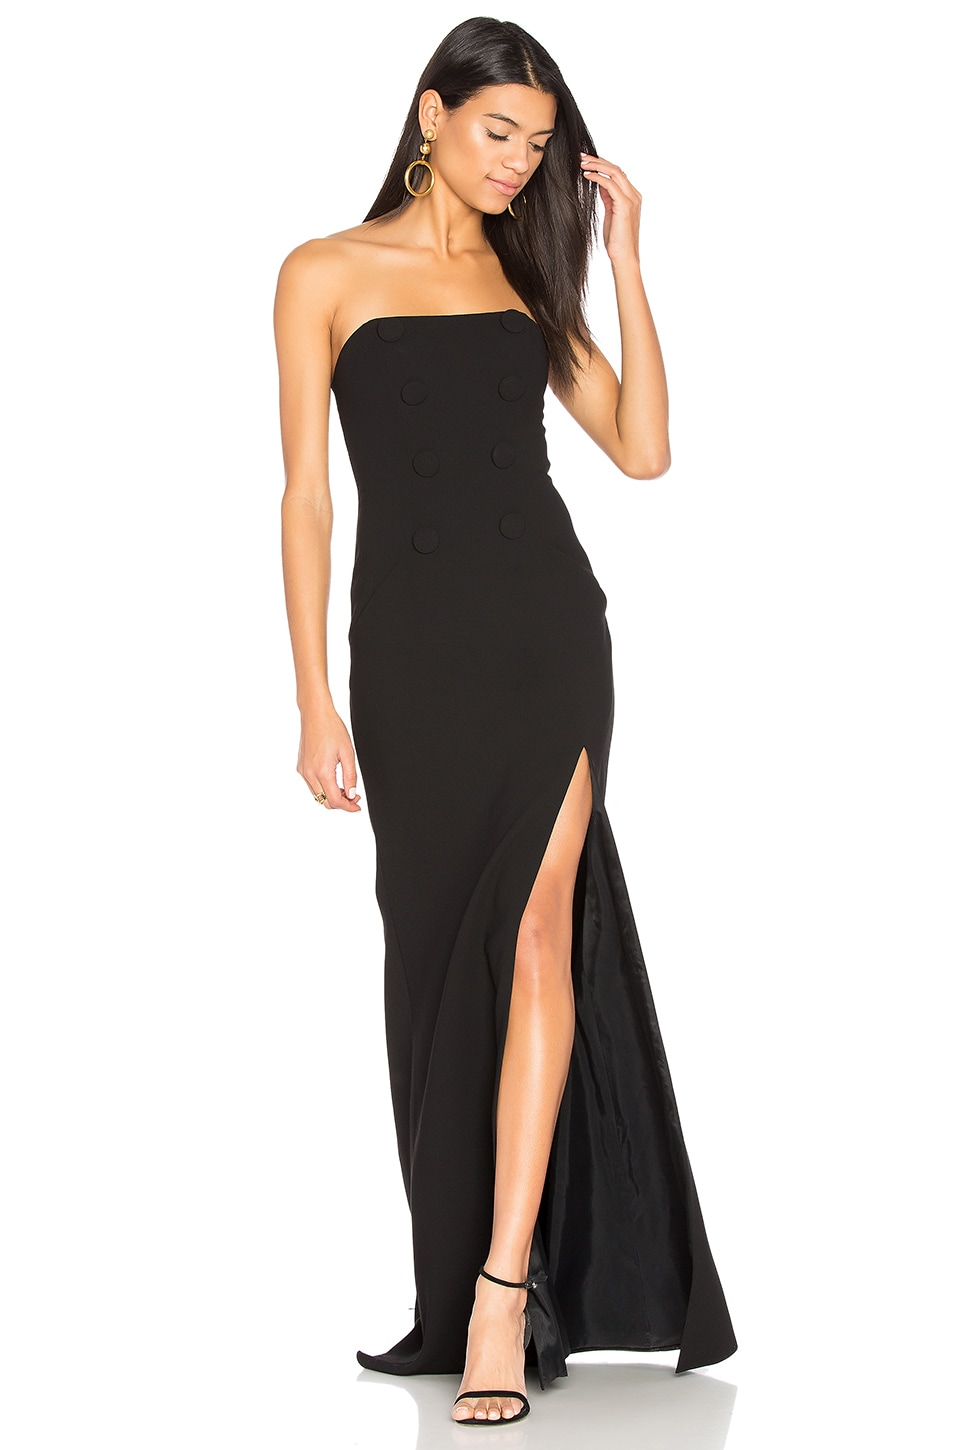 JILL JILL STUART Strapless Gown in Black